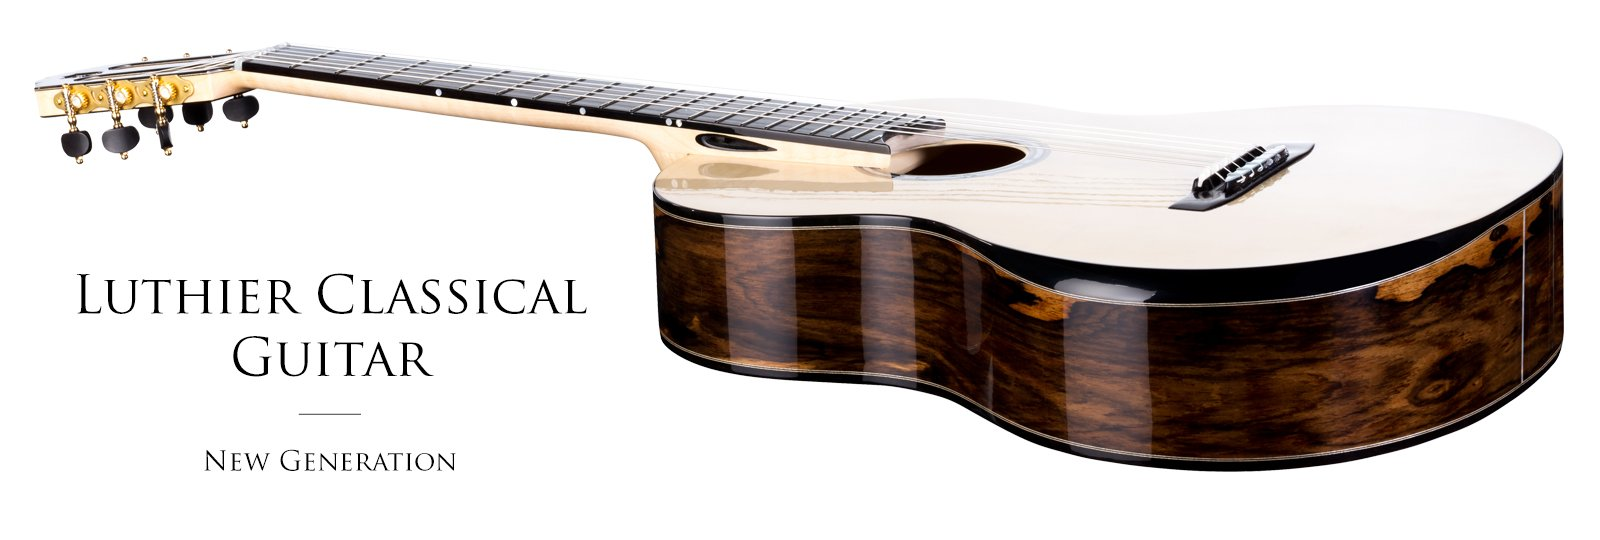 Luthier classical guitar slider